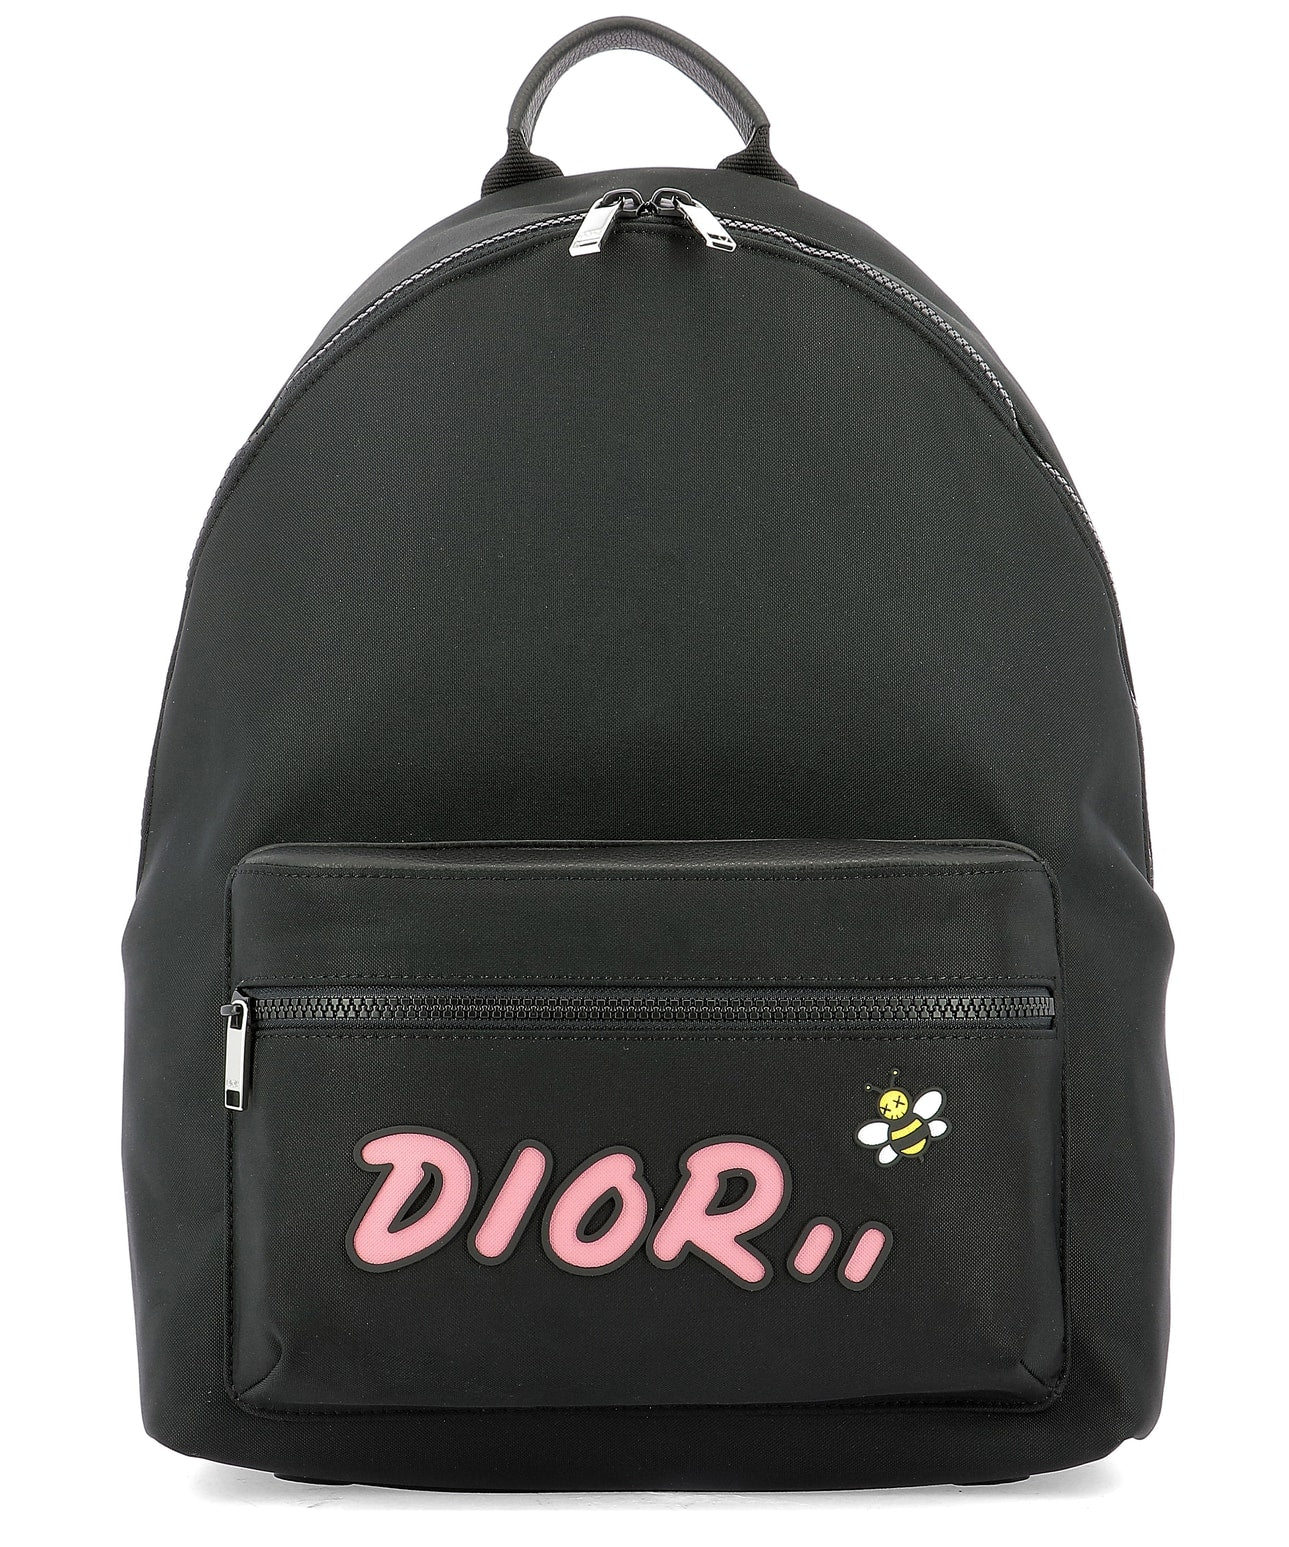 Dior Homme Backpacks DIOR HOMME LOGO BACKPACK